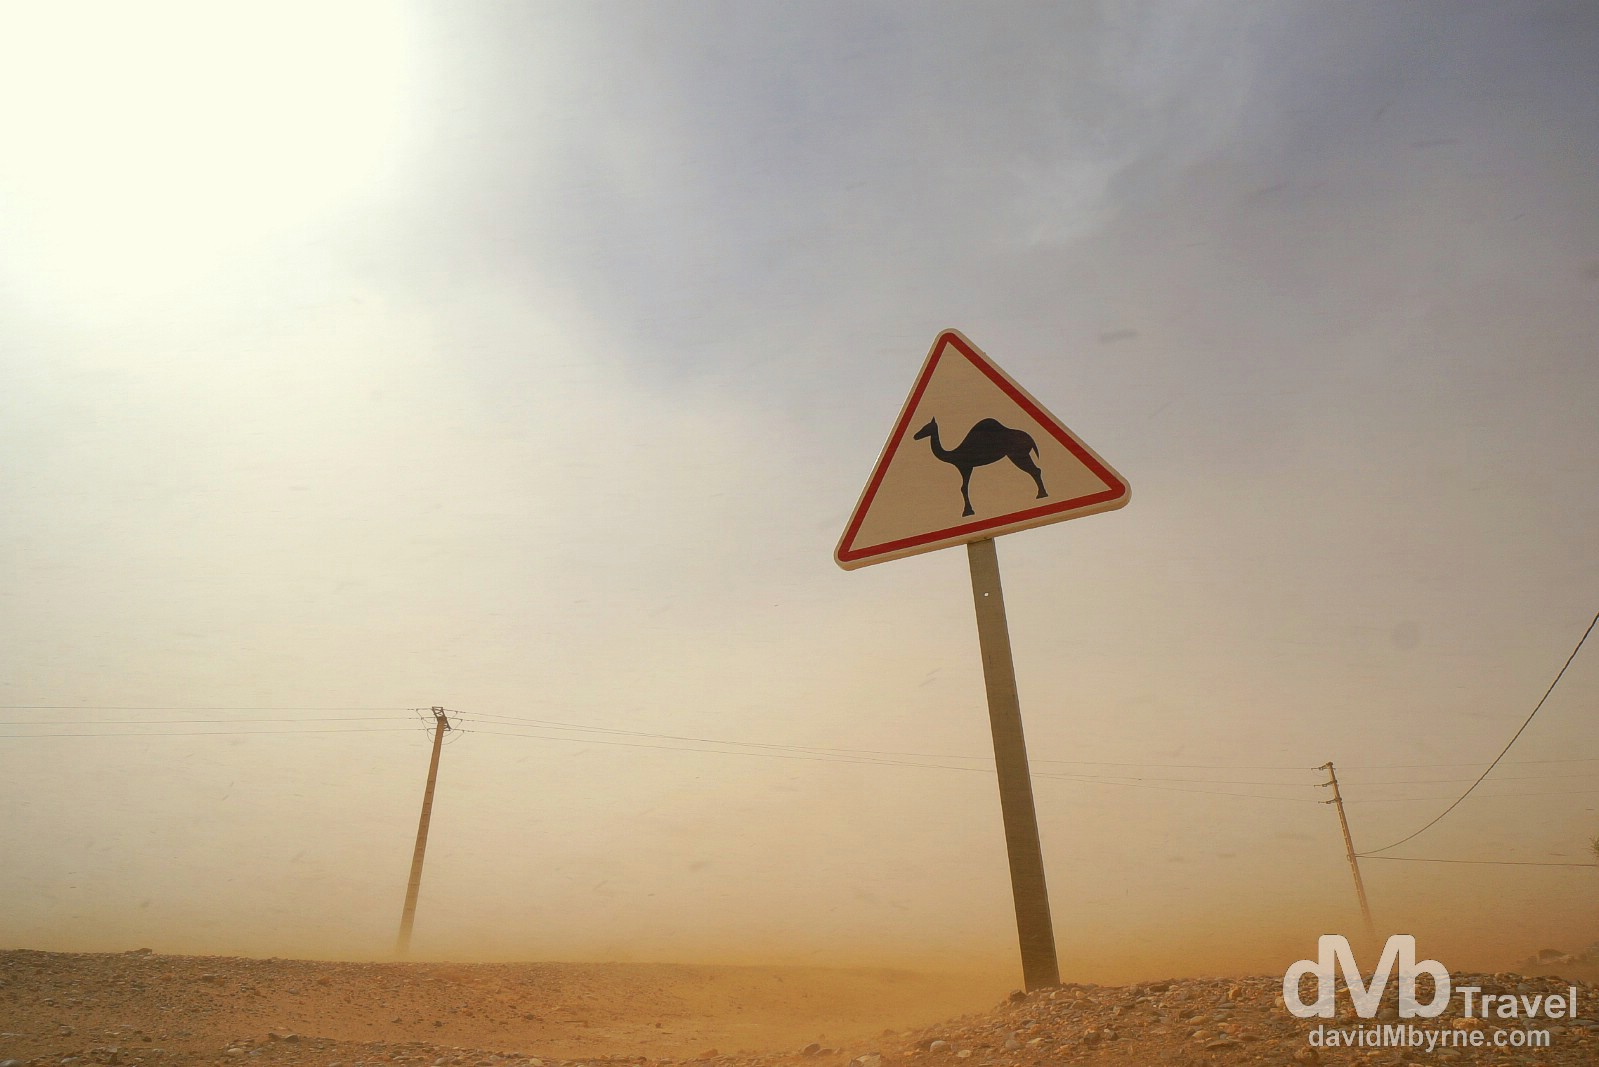 Sandstorm outside the village of Merzouga, Morocco. May 20th, 2014.